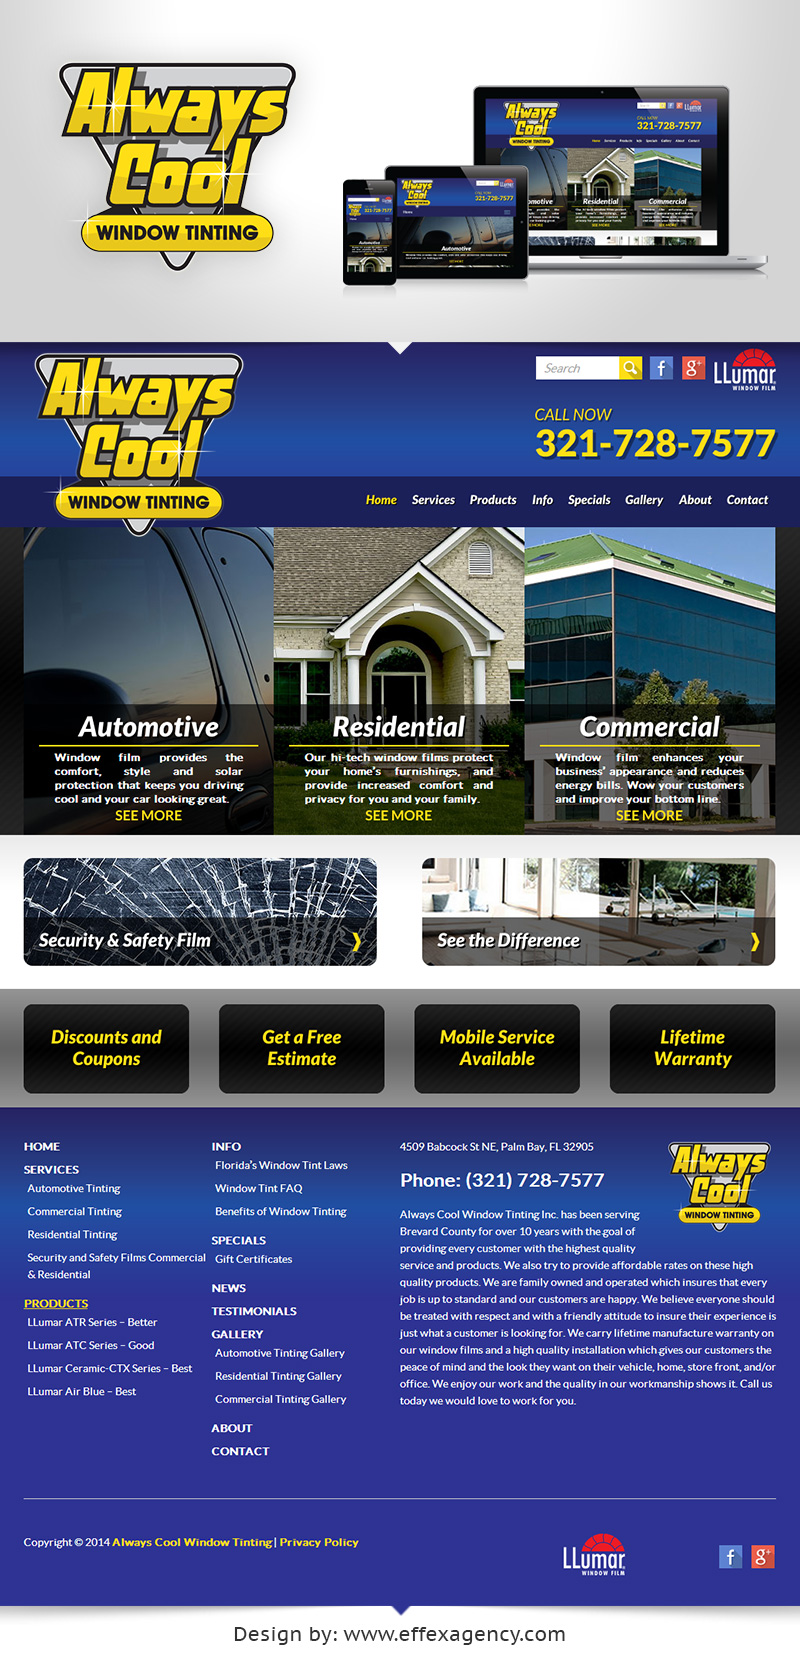 Always Cool Window Tinting responsive website